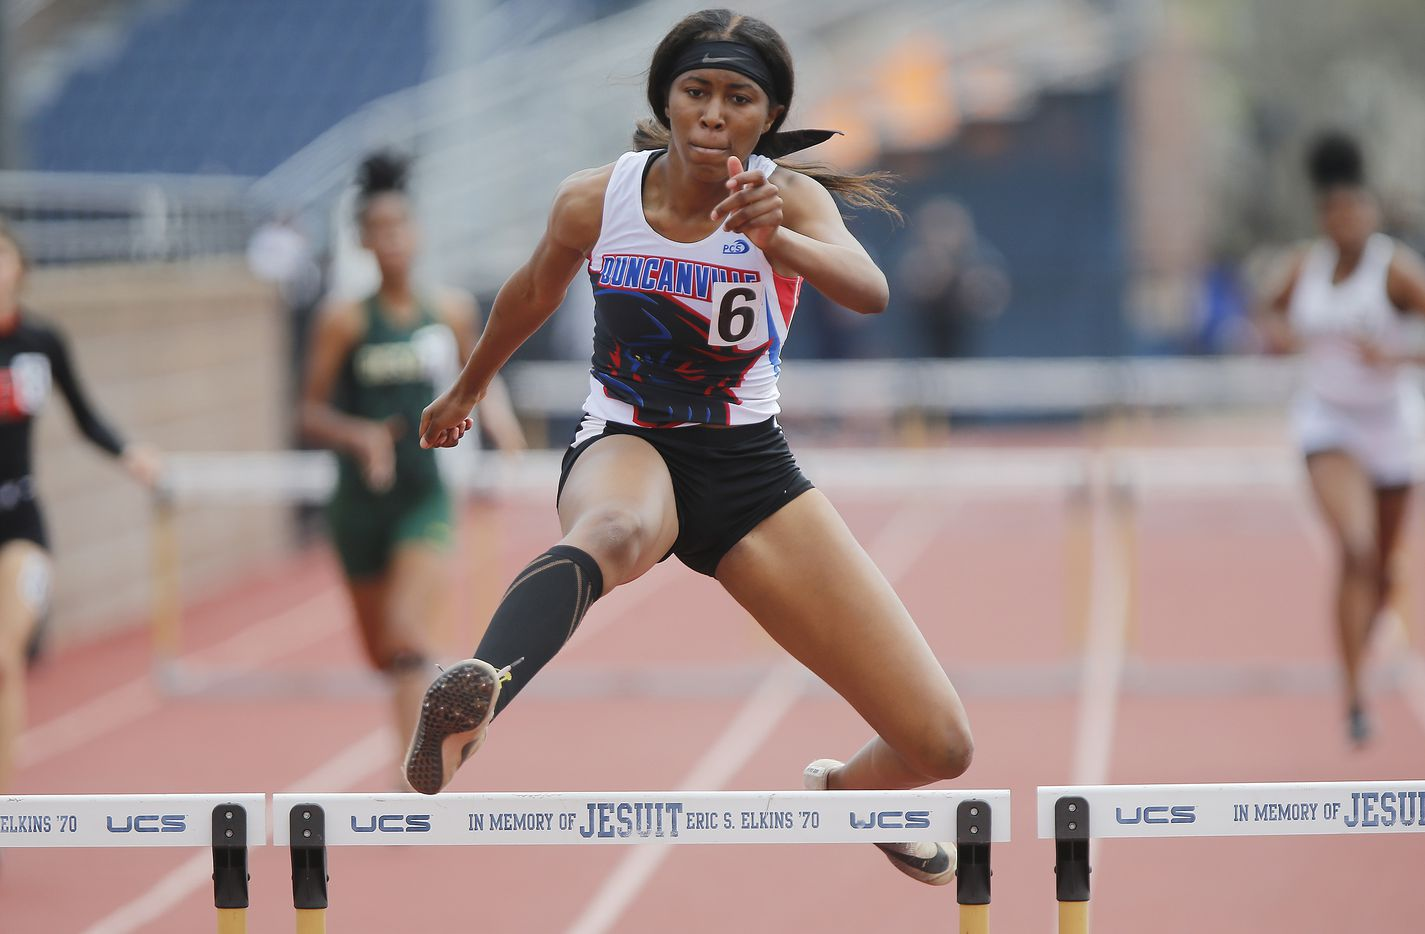 Loreal Jones, 16, of Duncanville High School, finished first in the second heat of the girls 300 meter hurdles during the Jesuit-Sheaner Relays held at Jesuit College Preparatory School in Dallas on Saturday, March 27, 2021.  (Stewart F. House/Special Contributor)